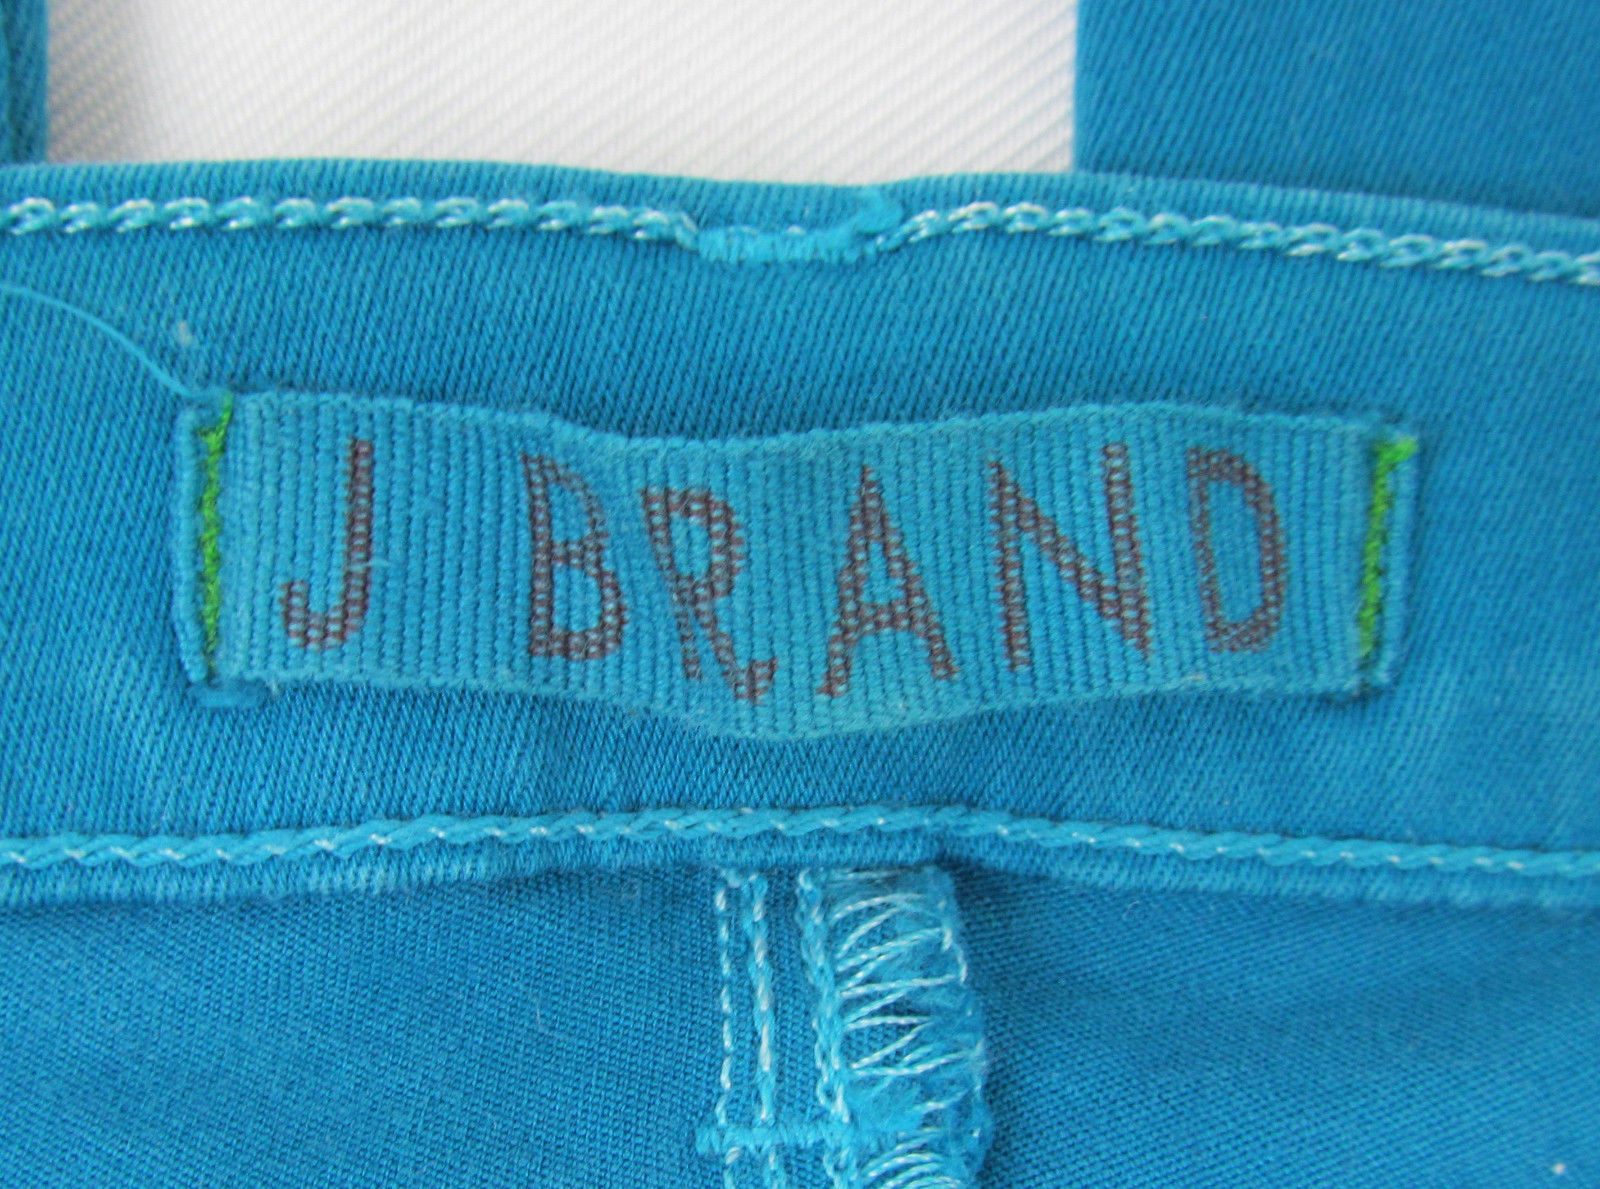 J Brand jeans Azure Ankle Skinny Zipper cuffs USA Made Teal Womens Size 25 image 8